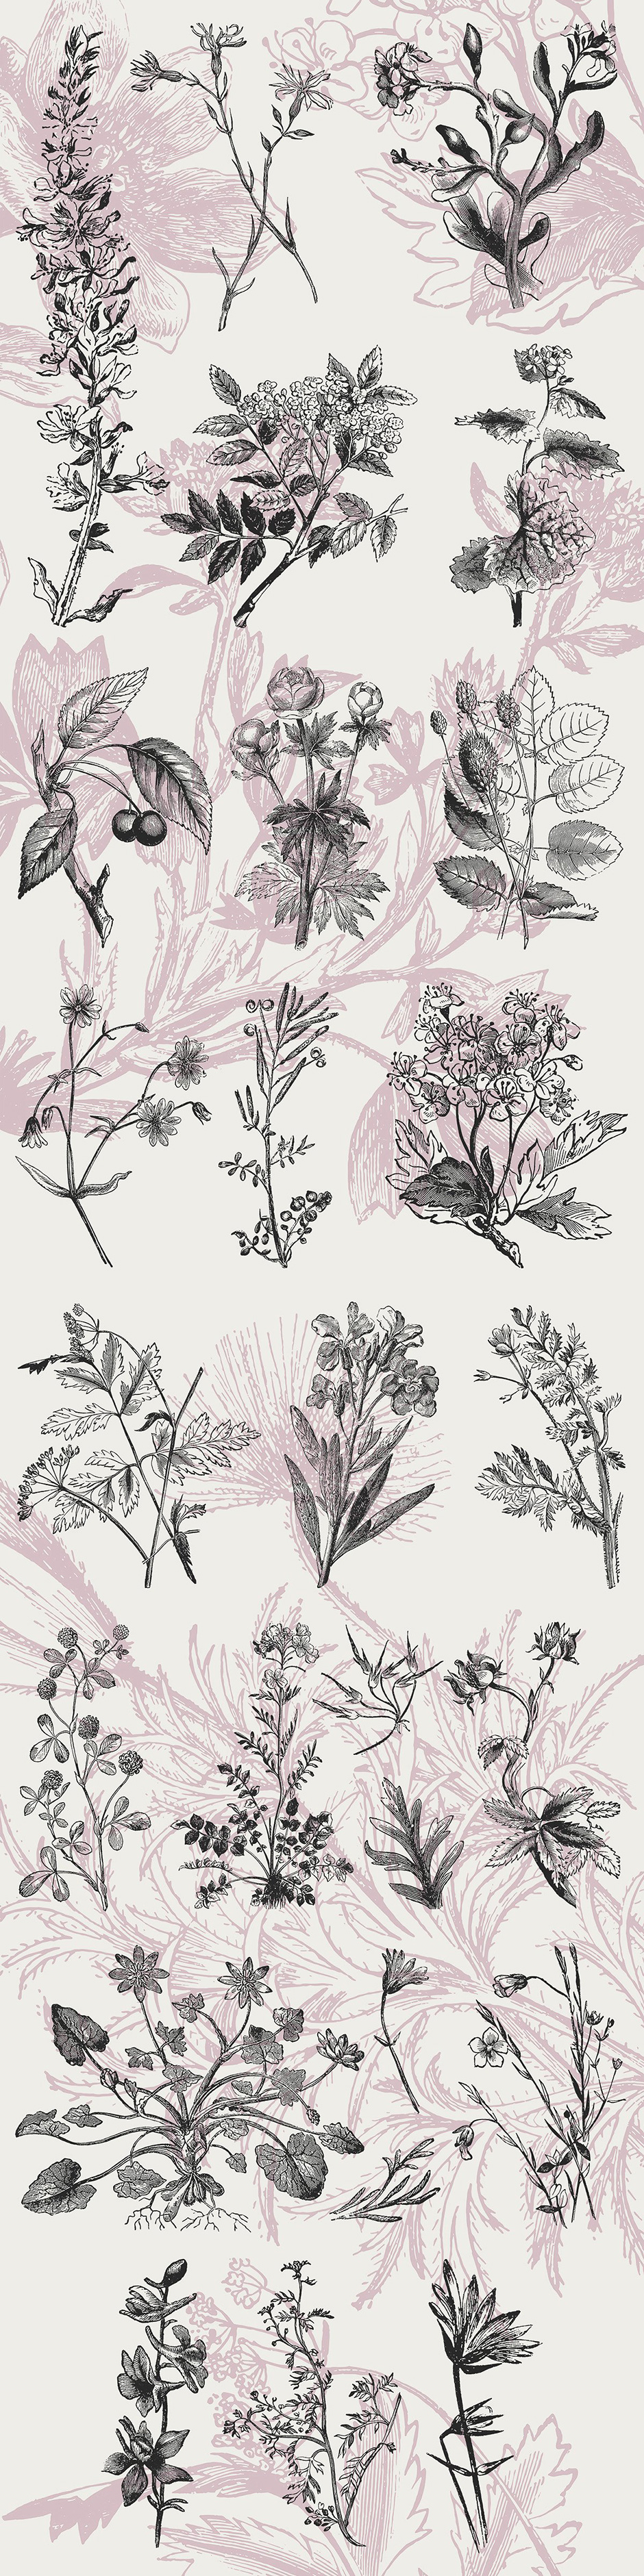 40 Plant & Flower Illustrations No. 4